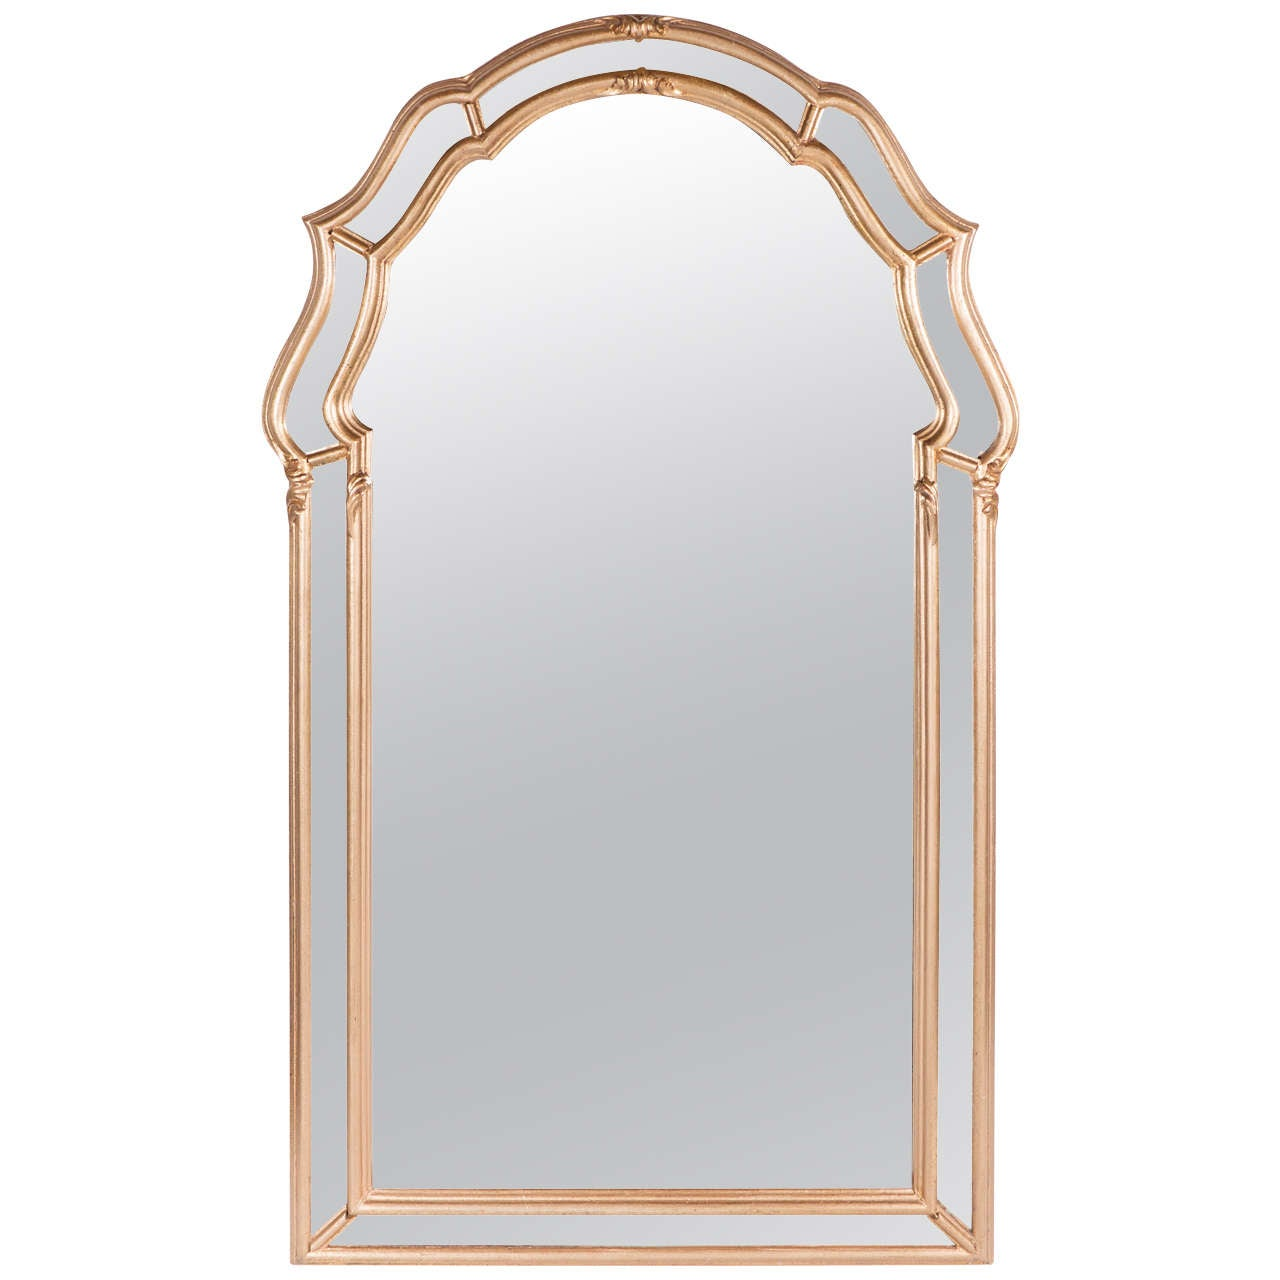 Stunning Mid-Century Modernist Gilt Mirror With Scroll Form Detailing